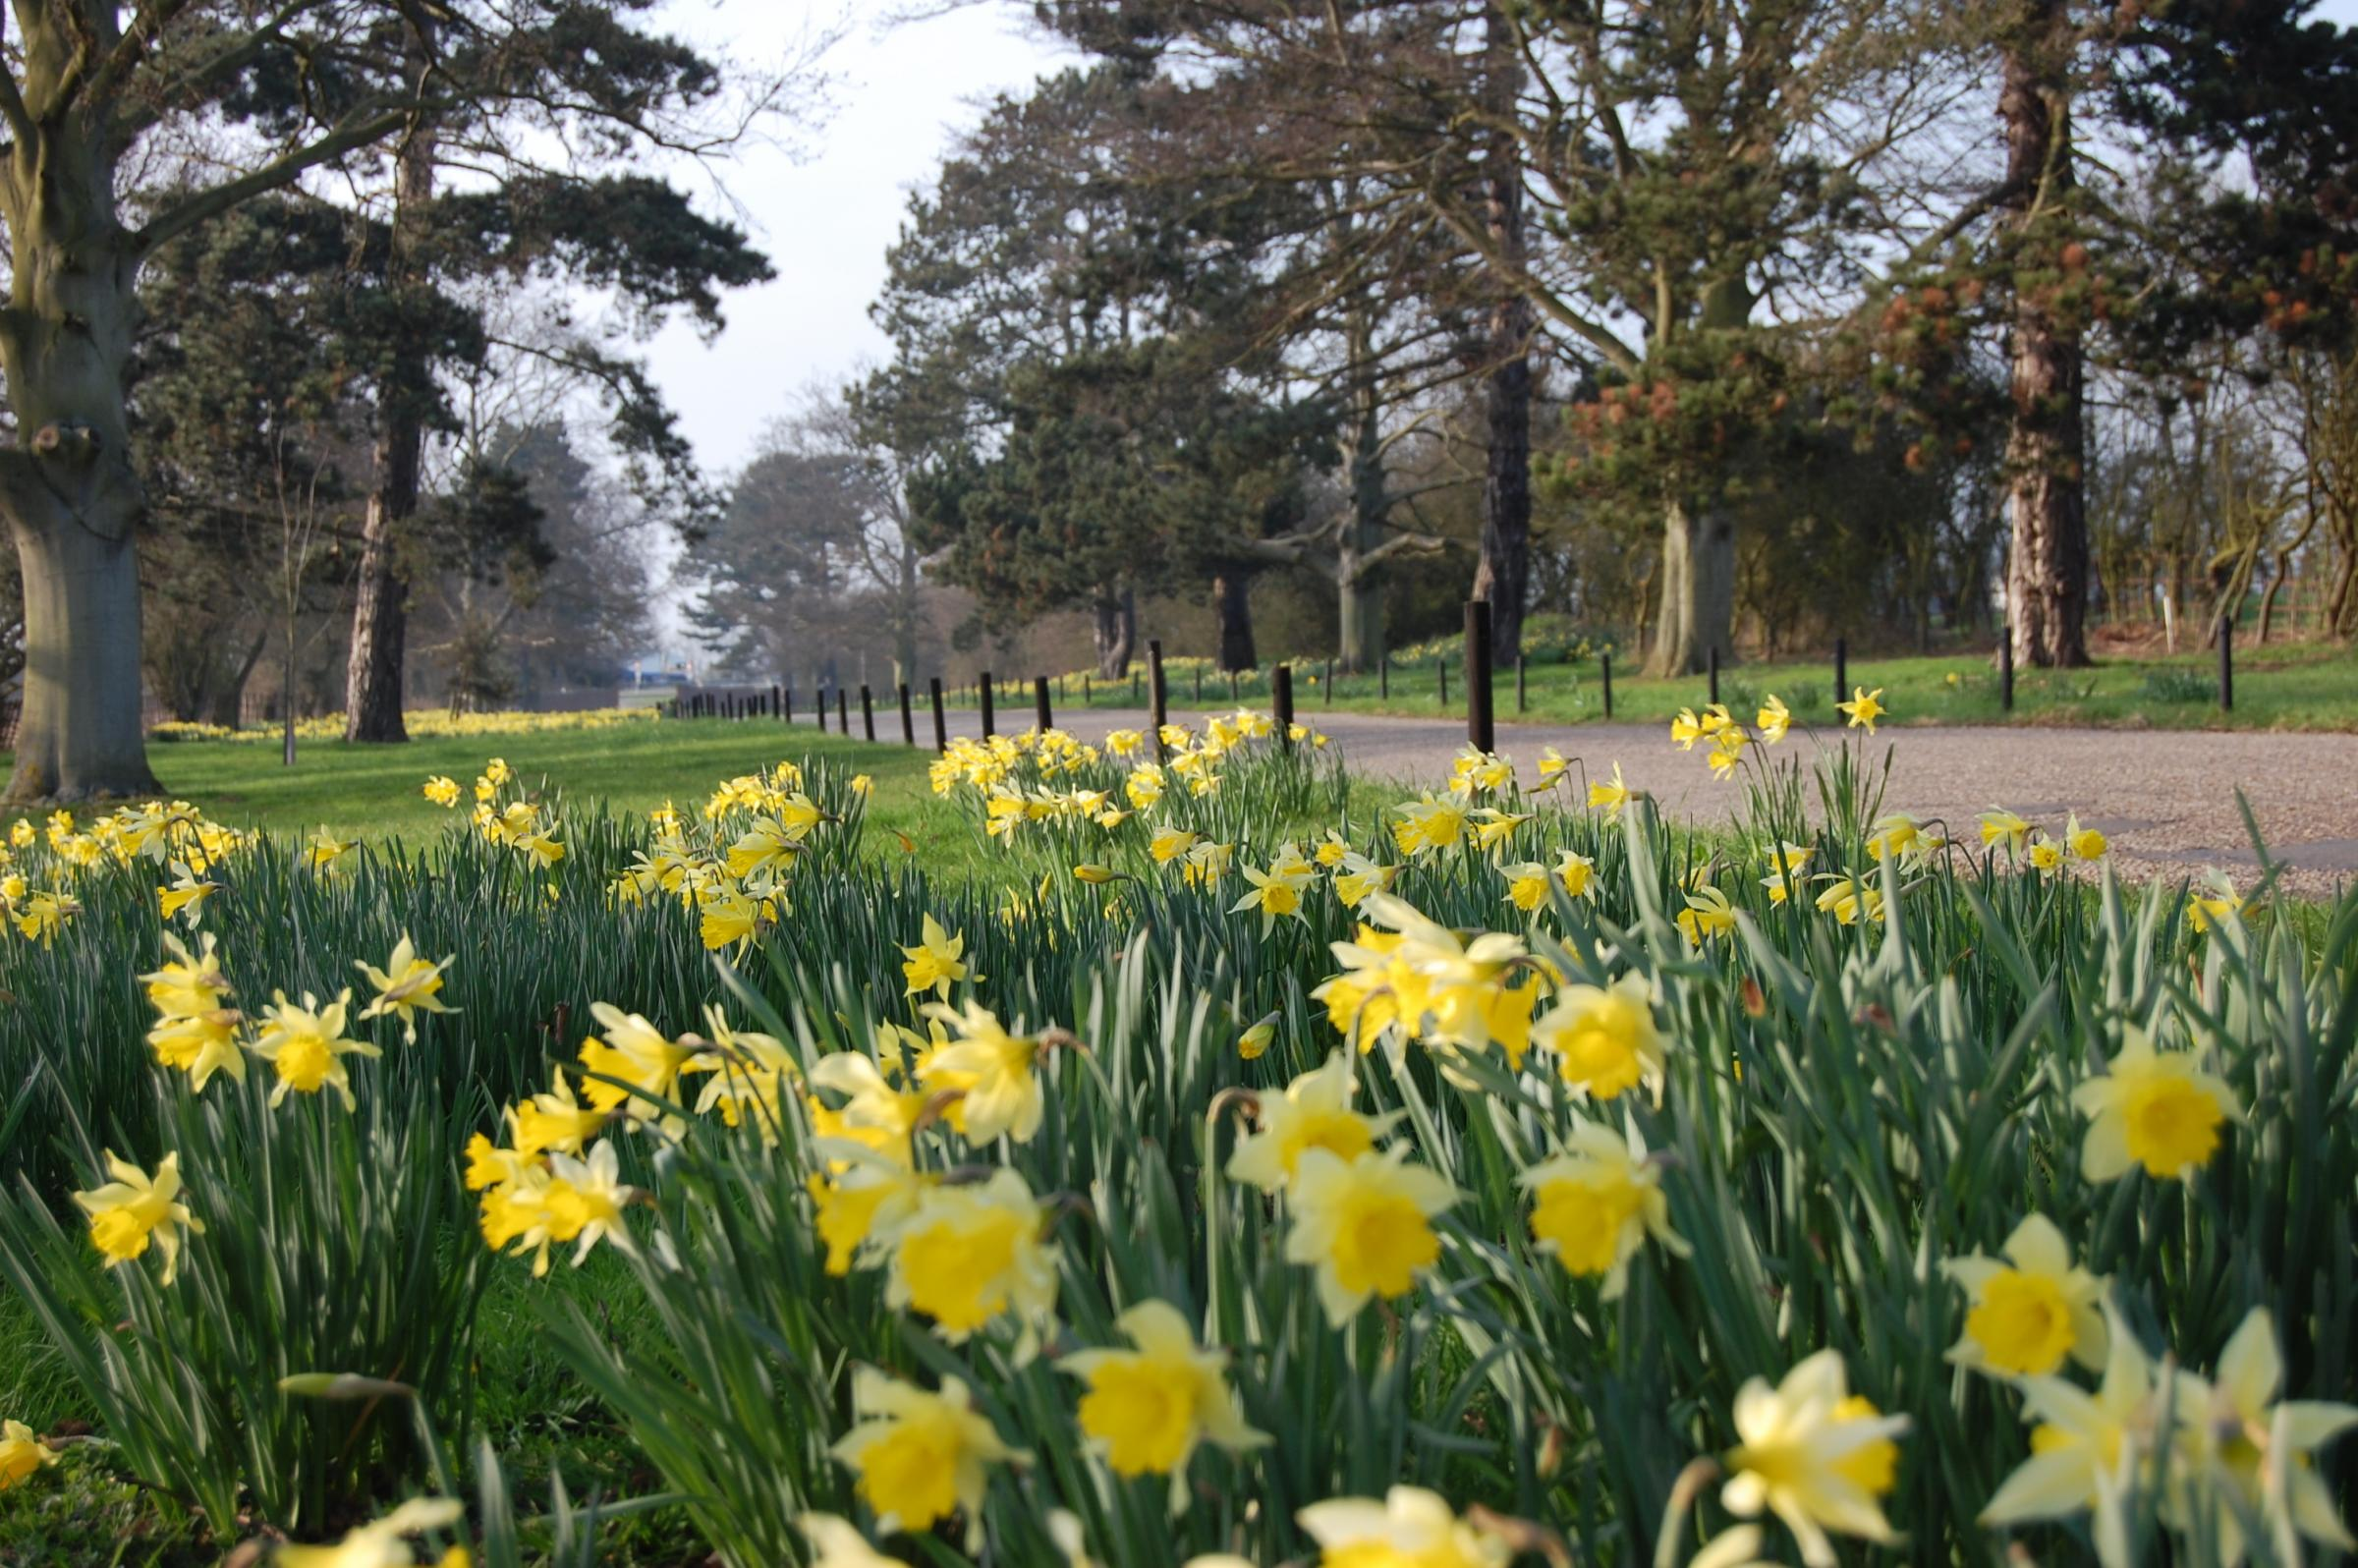 FLOWERS: Daffodils within the grounds at Prested Hall